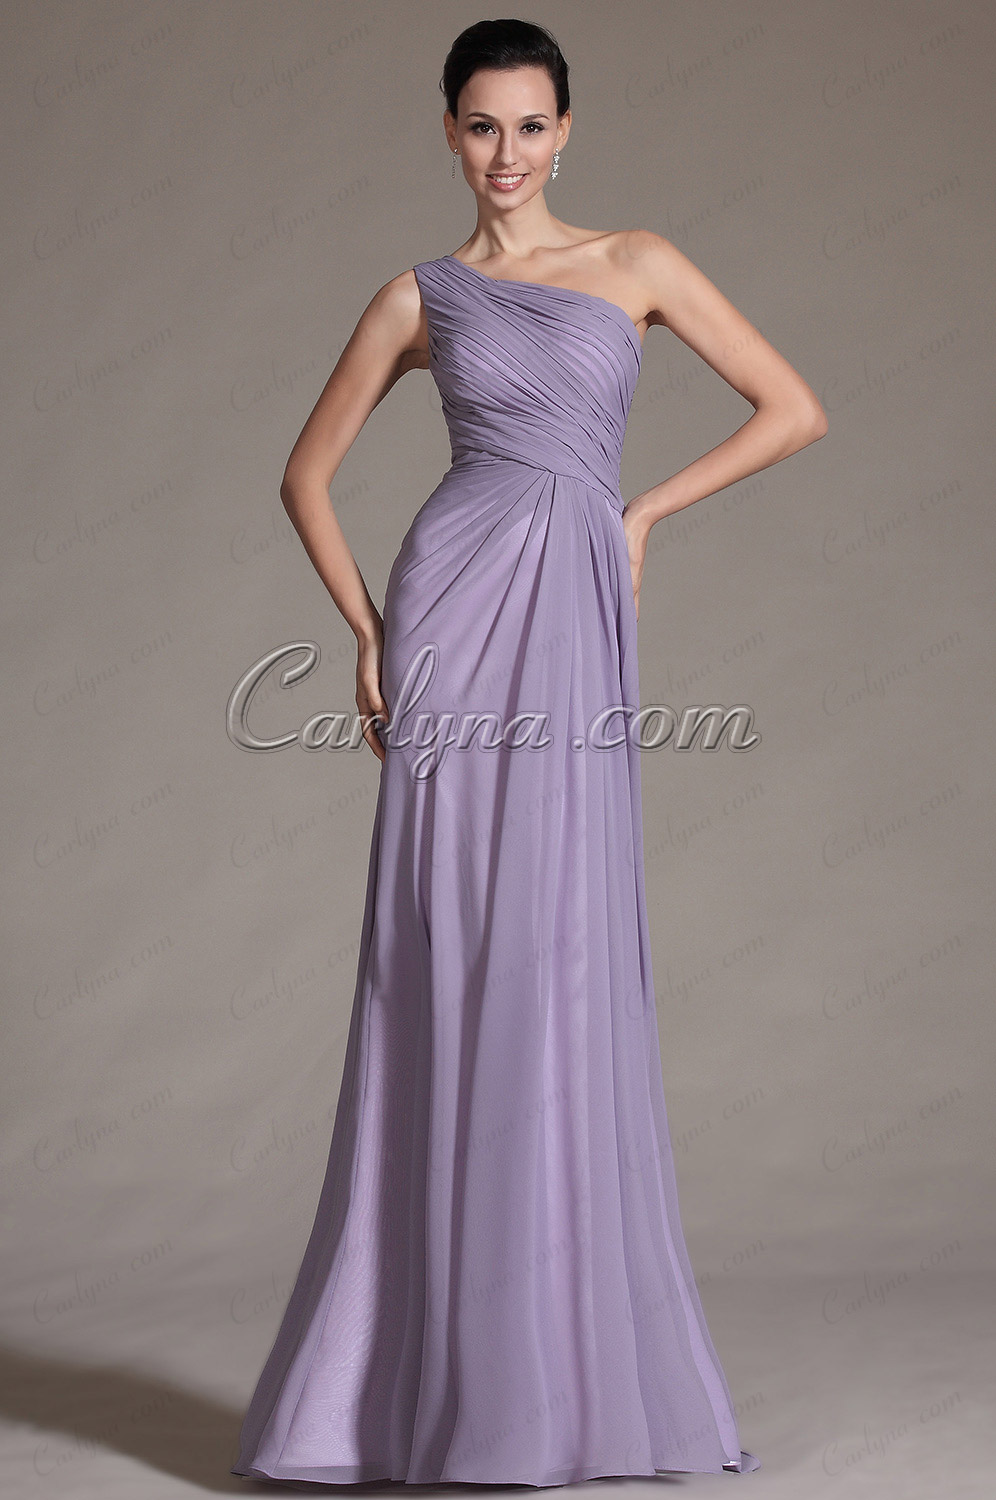 2014 New Simple One Shoulder Style Evening Dress Bridesmaid Dress (C00146506)